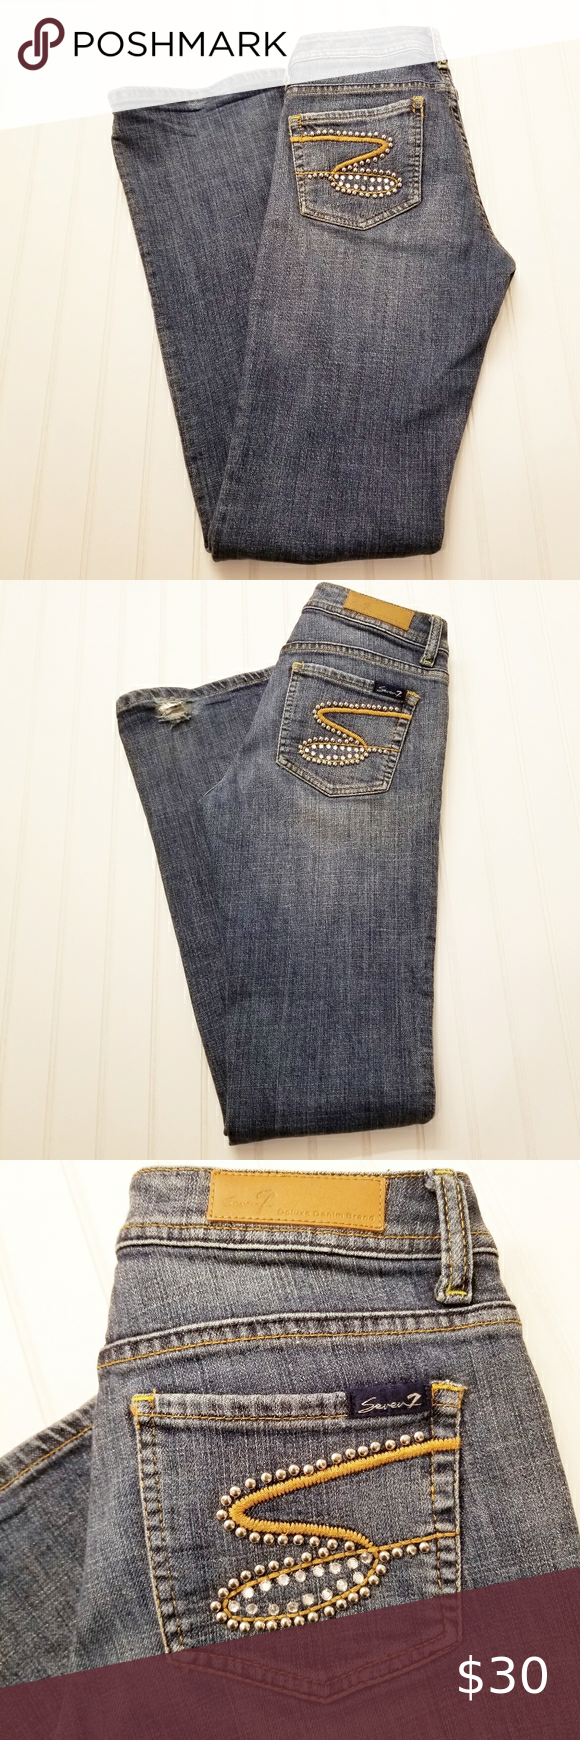 Seven7 Embellished Medium Wash Jeans Sz 27 Seven7  Embellished  Medium Wash  Jeans  Sz 27 Factory Fading & Whiskering Note: Back Hem Wear at the Botton  Approximate Measurements: Waist 15.5 inches Rise 7.5 inches Inseam 32 inches  Please review all listed approximate measurements and pictures to see all the details & blemishes. Smoke & Pet Free Home. No Trades. If you have any questions, please feel free to contact me.  A9/0630/HC2 Seven7 Jeans